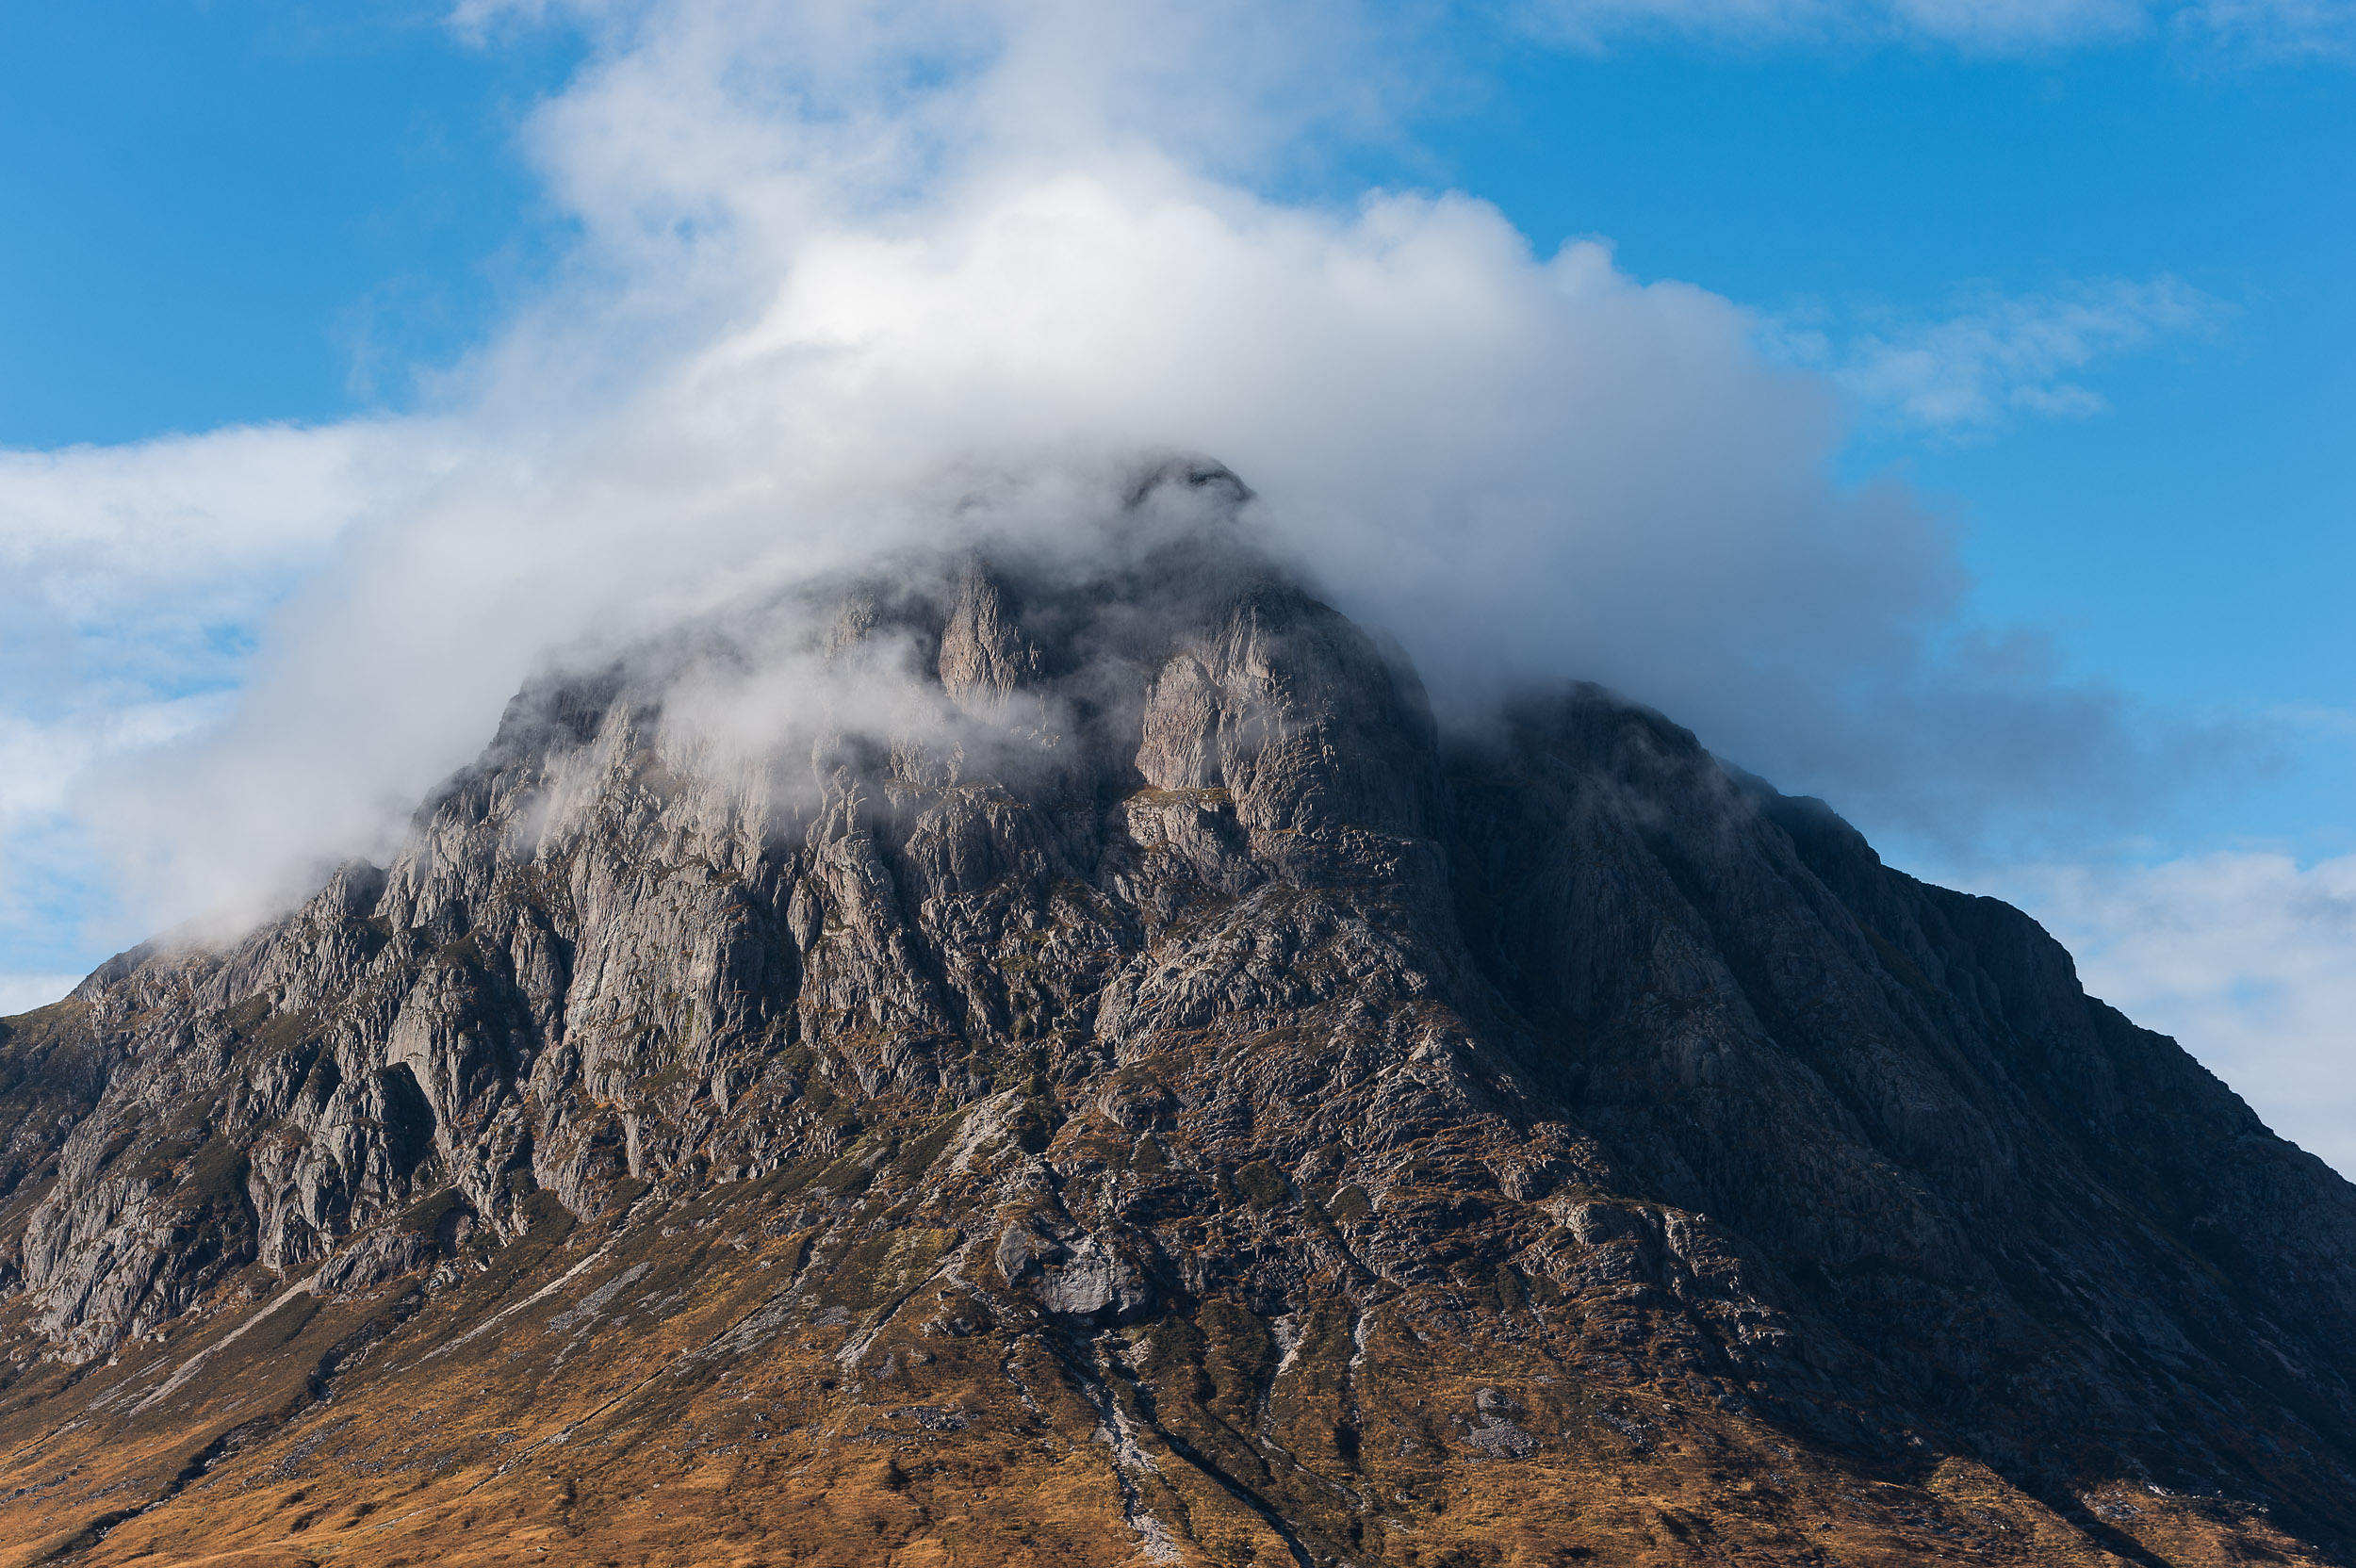 Clouds cover the summit of Buachaille Etive Mor (the 'big herdsman of Etive'), a well-known Scottish peak which stands at the entrance to Glen Etive and Glen Coe in the West Highlands of Scotland.